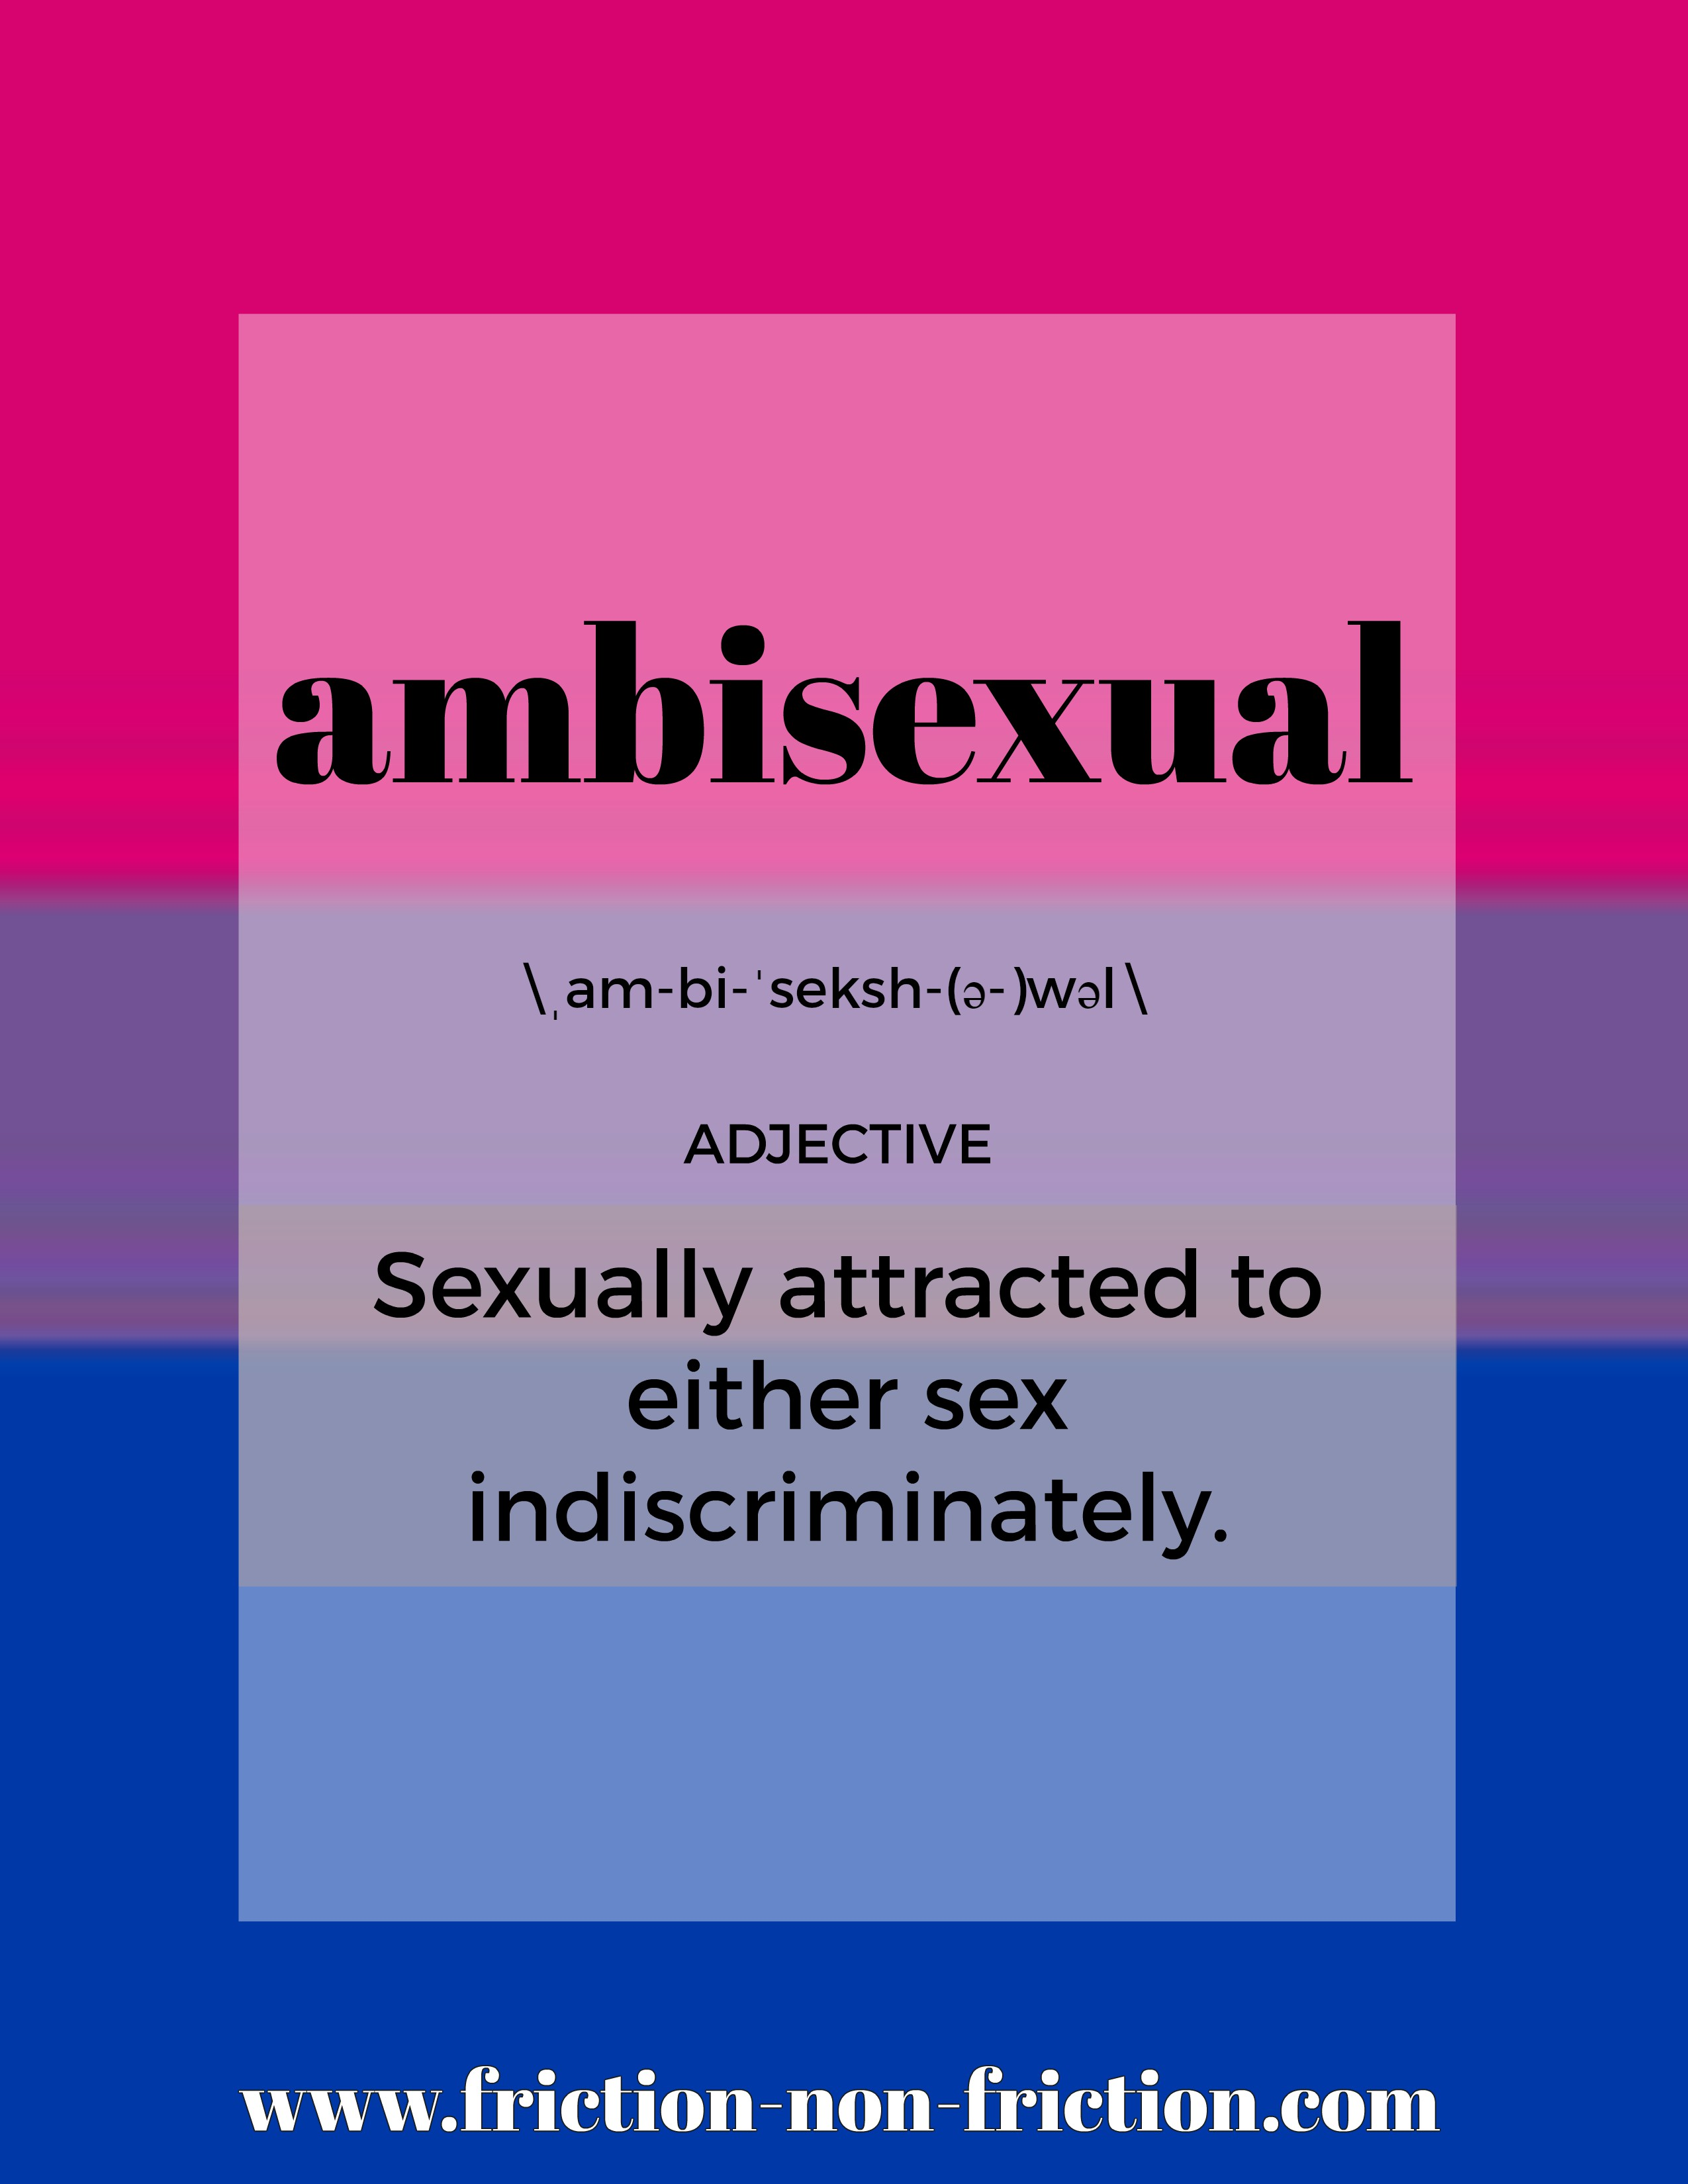 Ambisexual -- another great FRICTIONARY definition from Friction|non|Friction